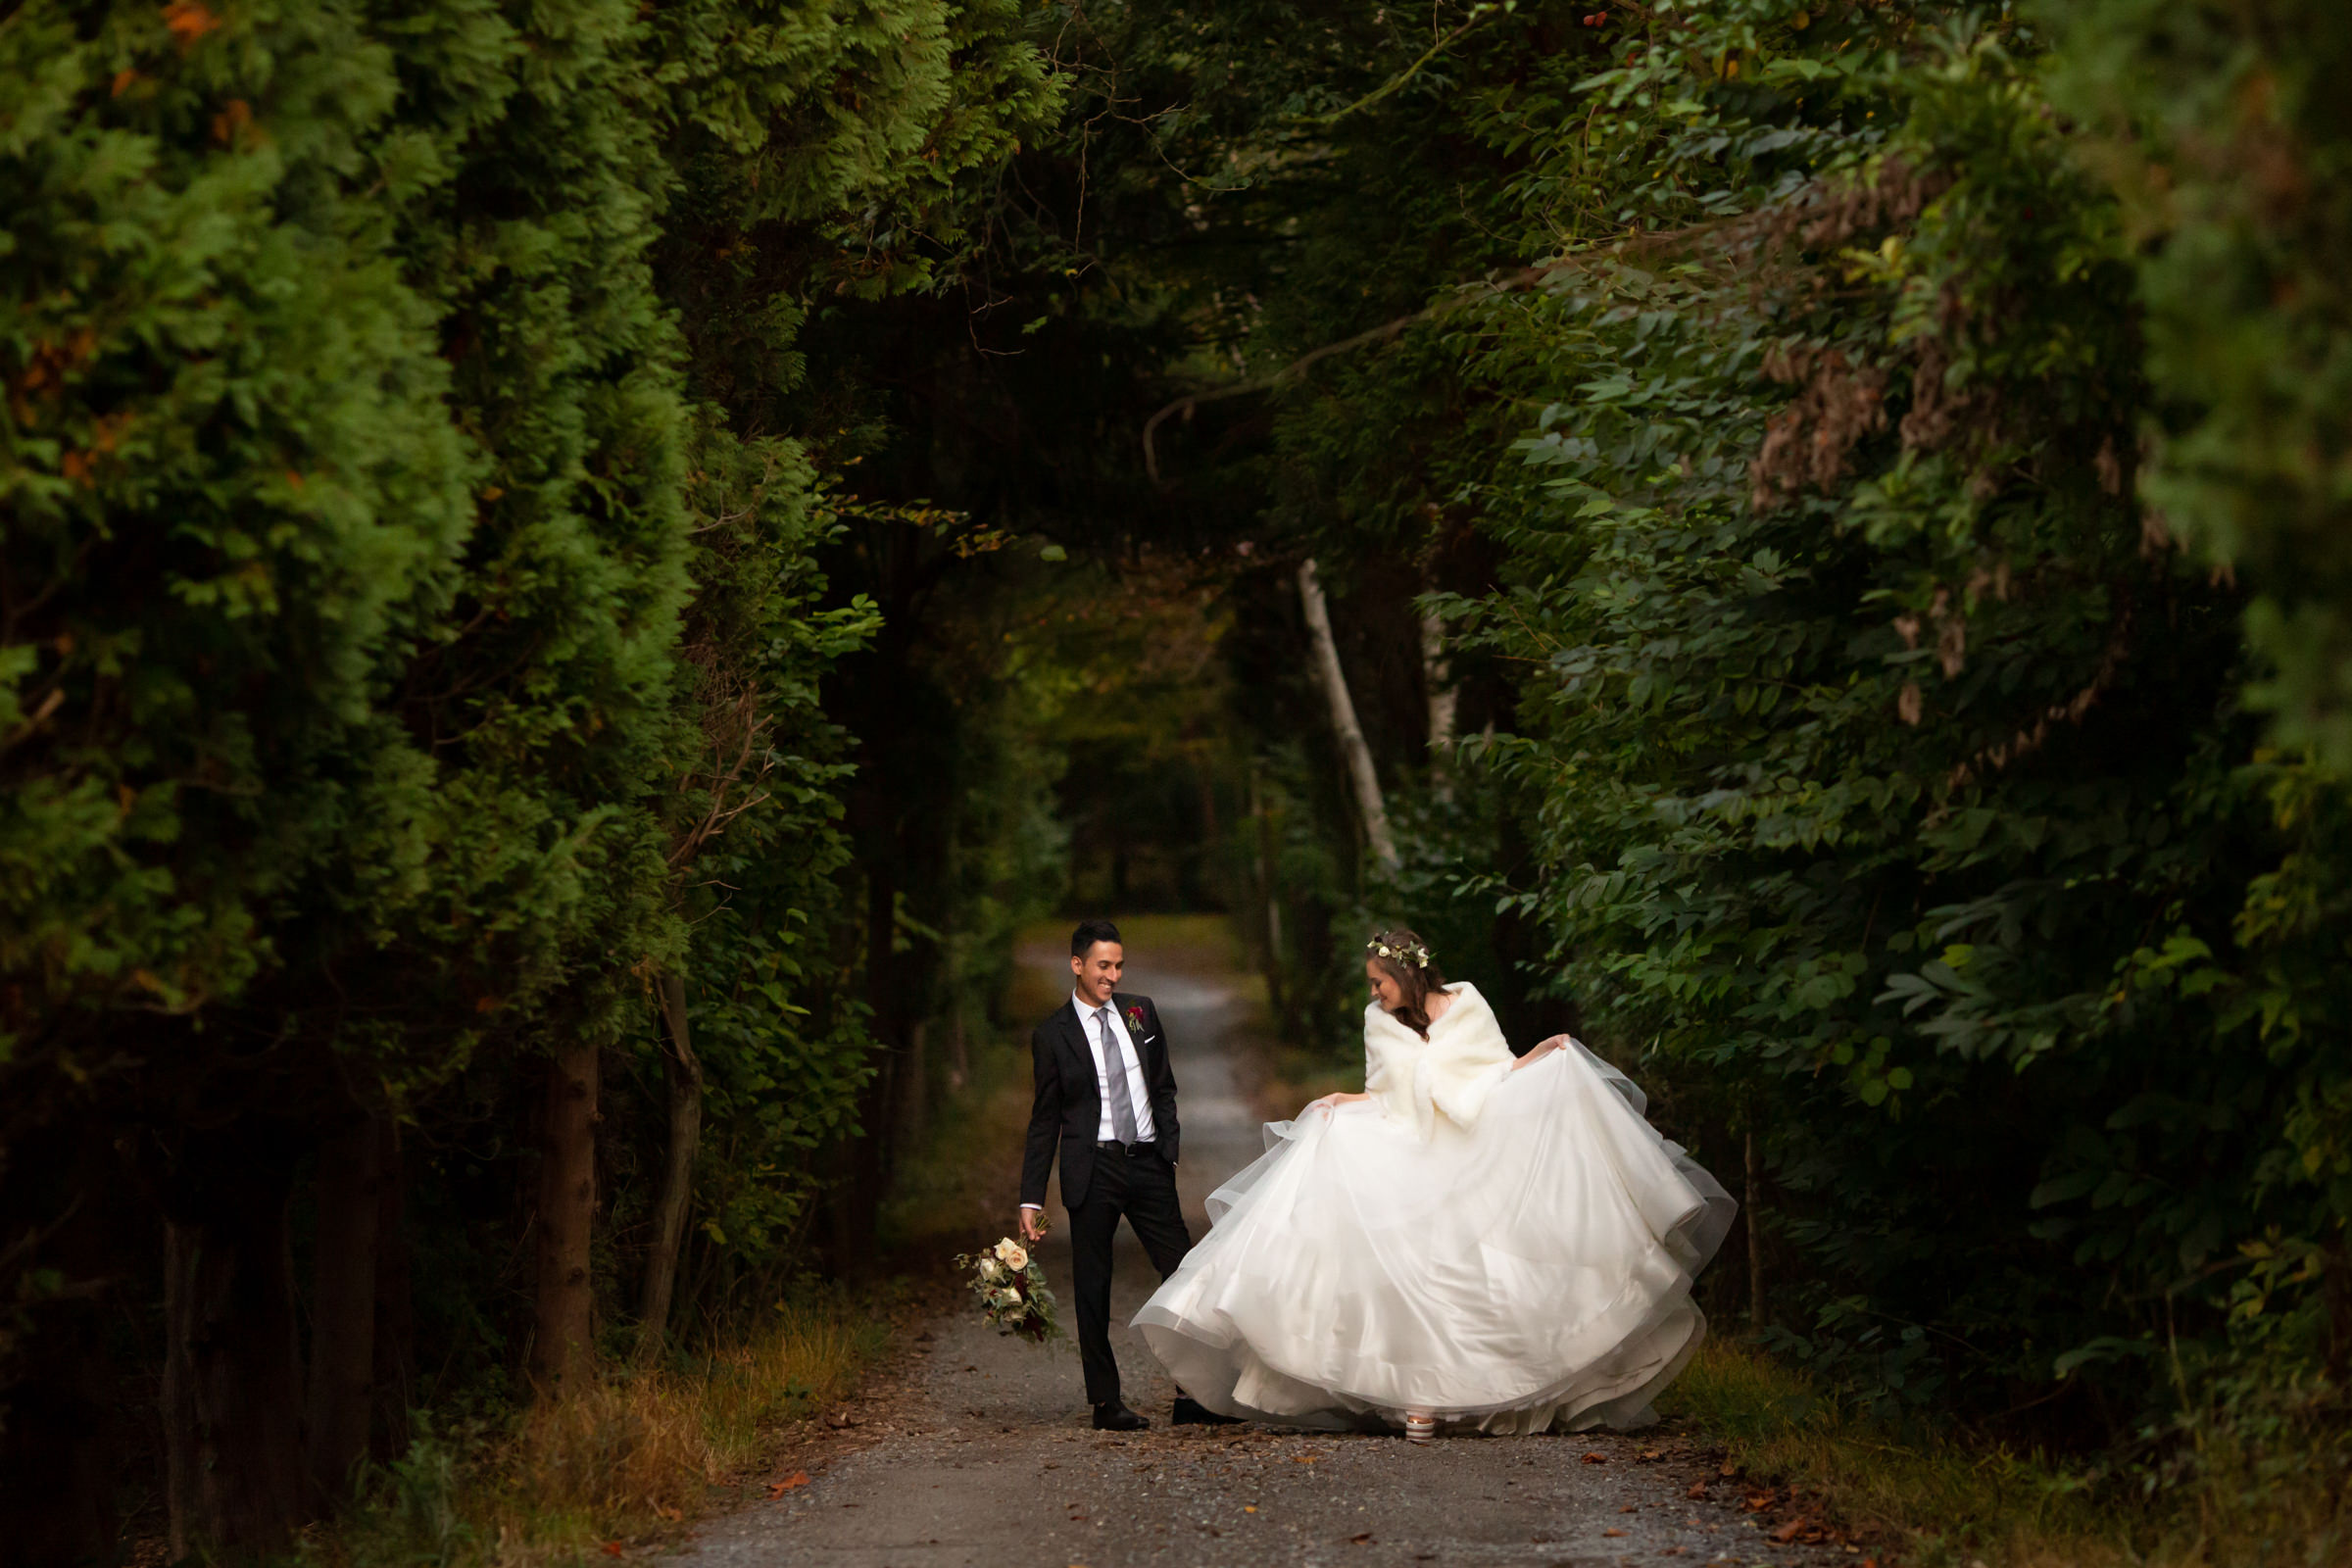 Bride in voluminous gown with groom on country road - photo by Procopio Photography